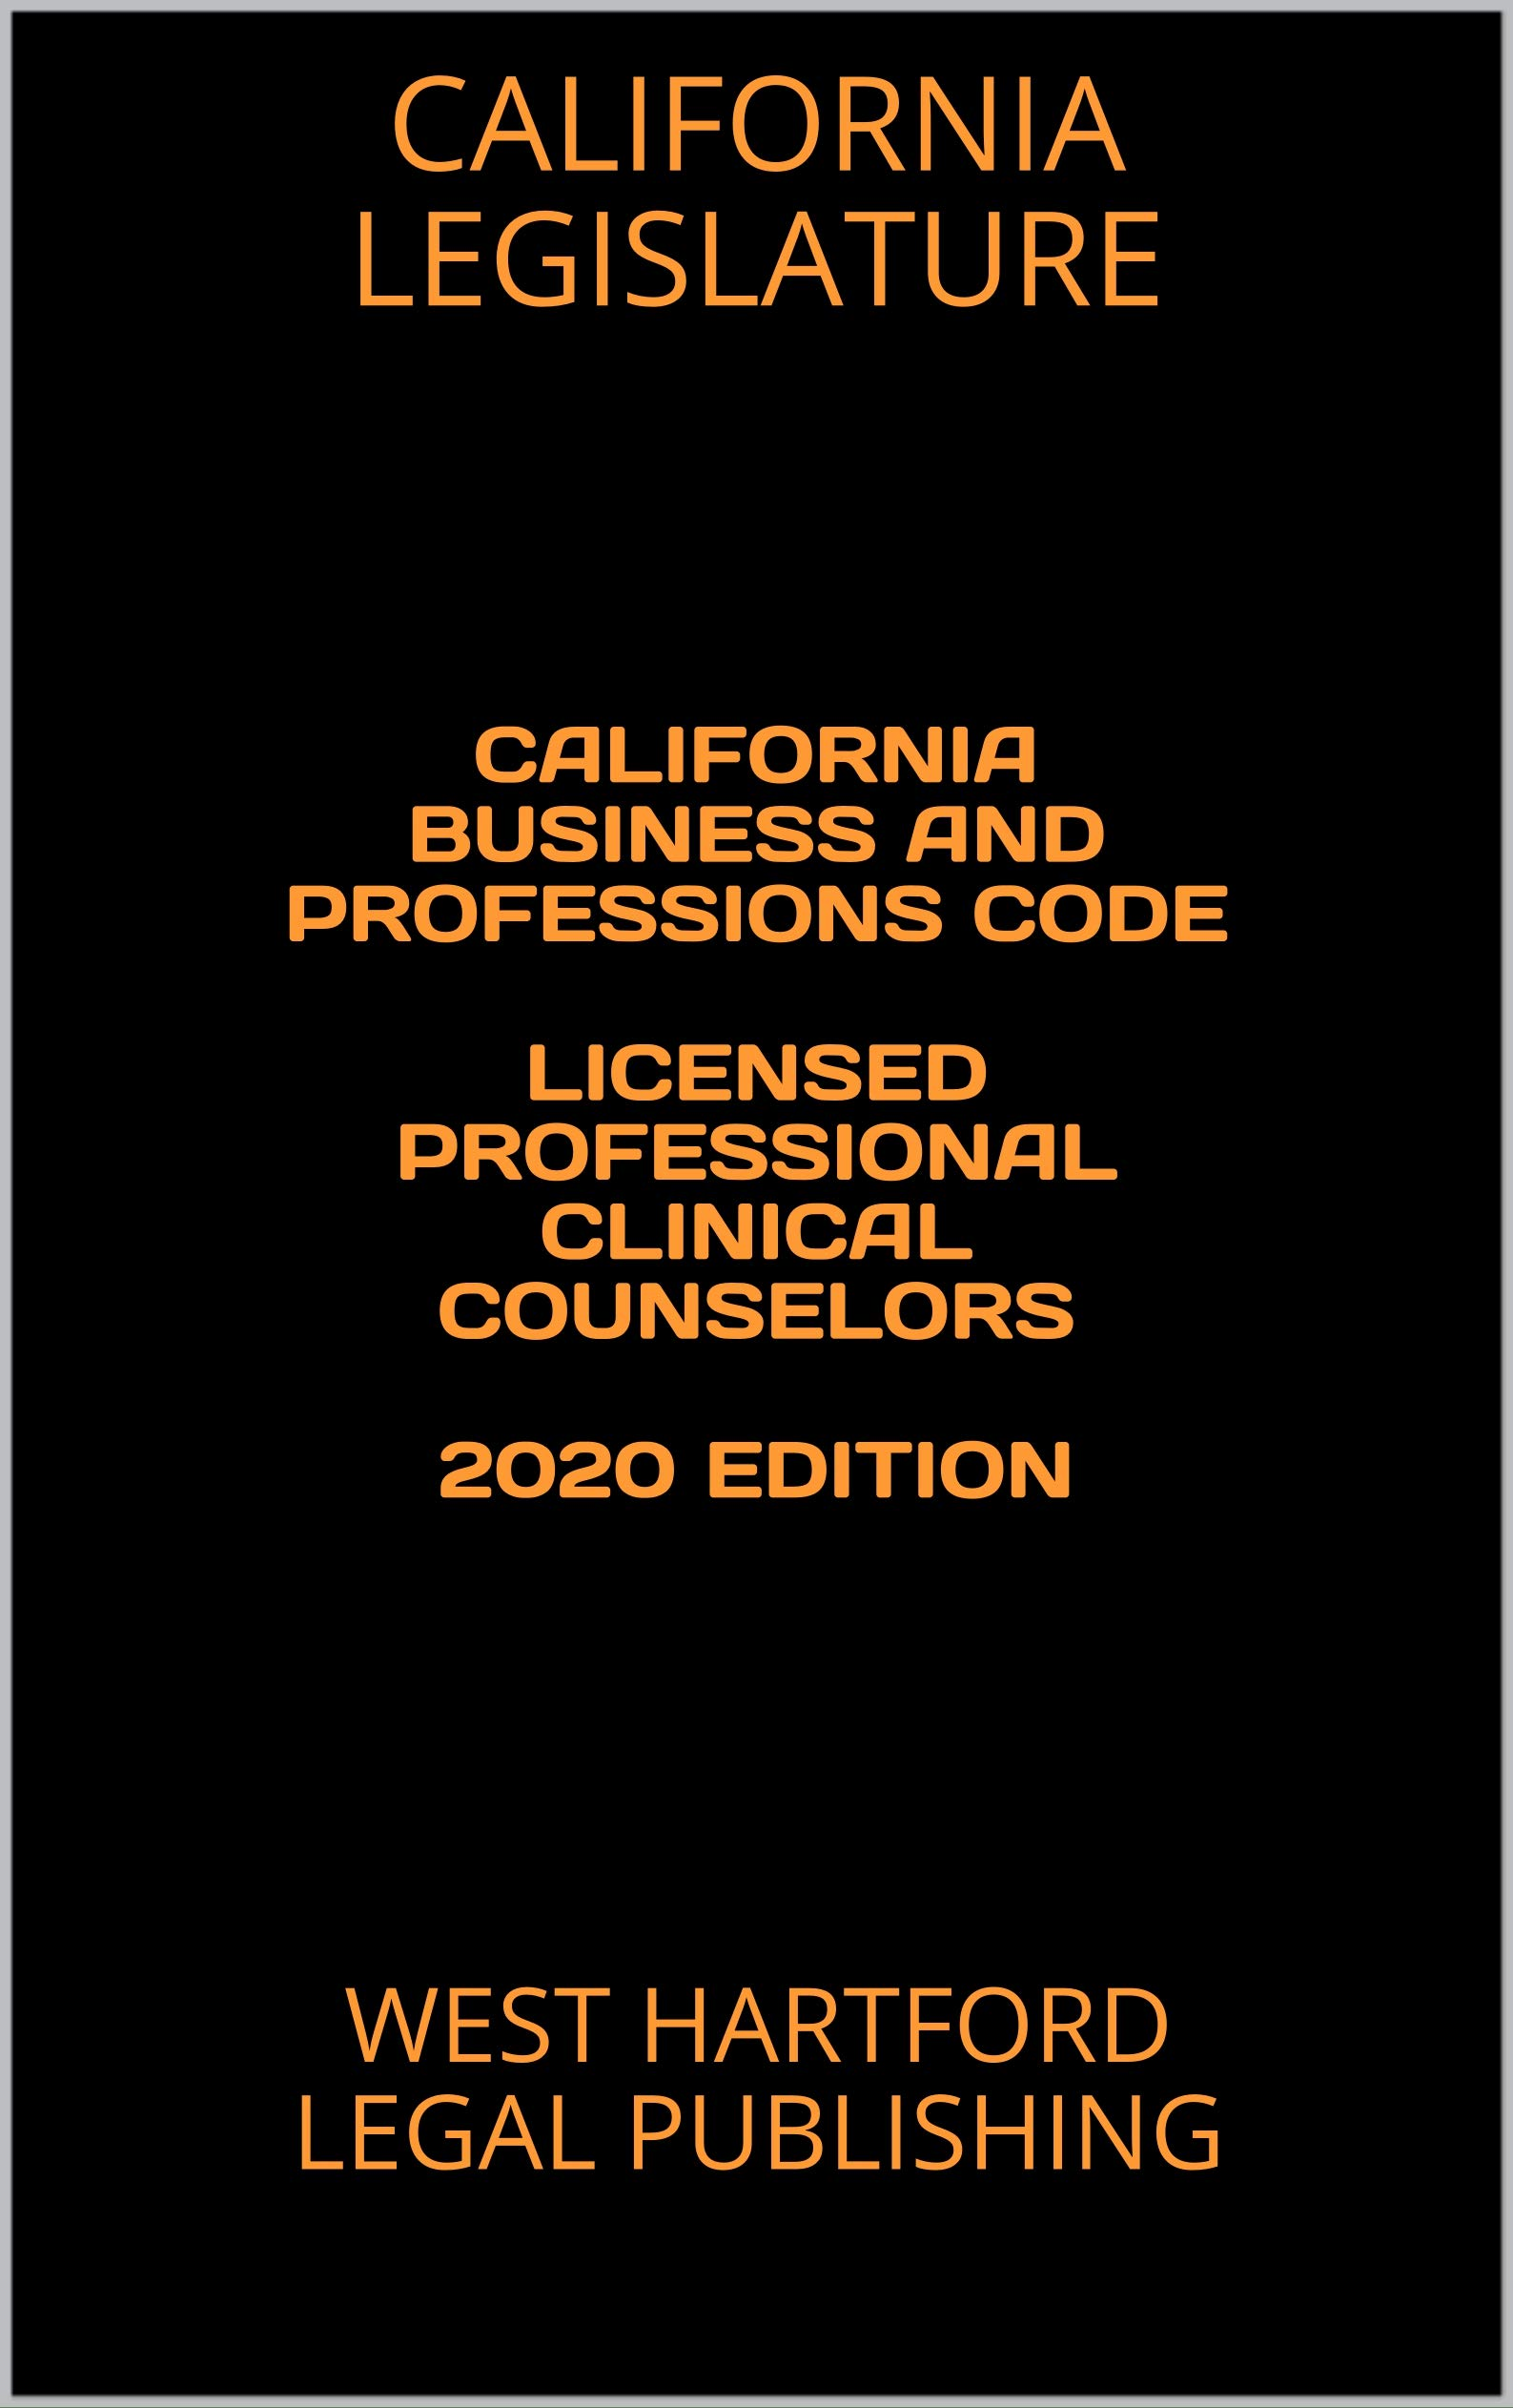 CALIFORNIA BUSINESS AND PROFESSIONS CODE LICENSED PROFESSIONAL CLINICAL COUNSELORS 2020 EDITION: WEST HARTFORD LEGAL PUBLISHING